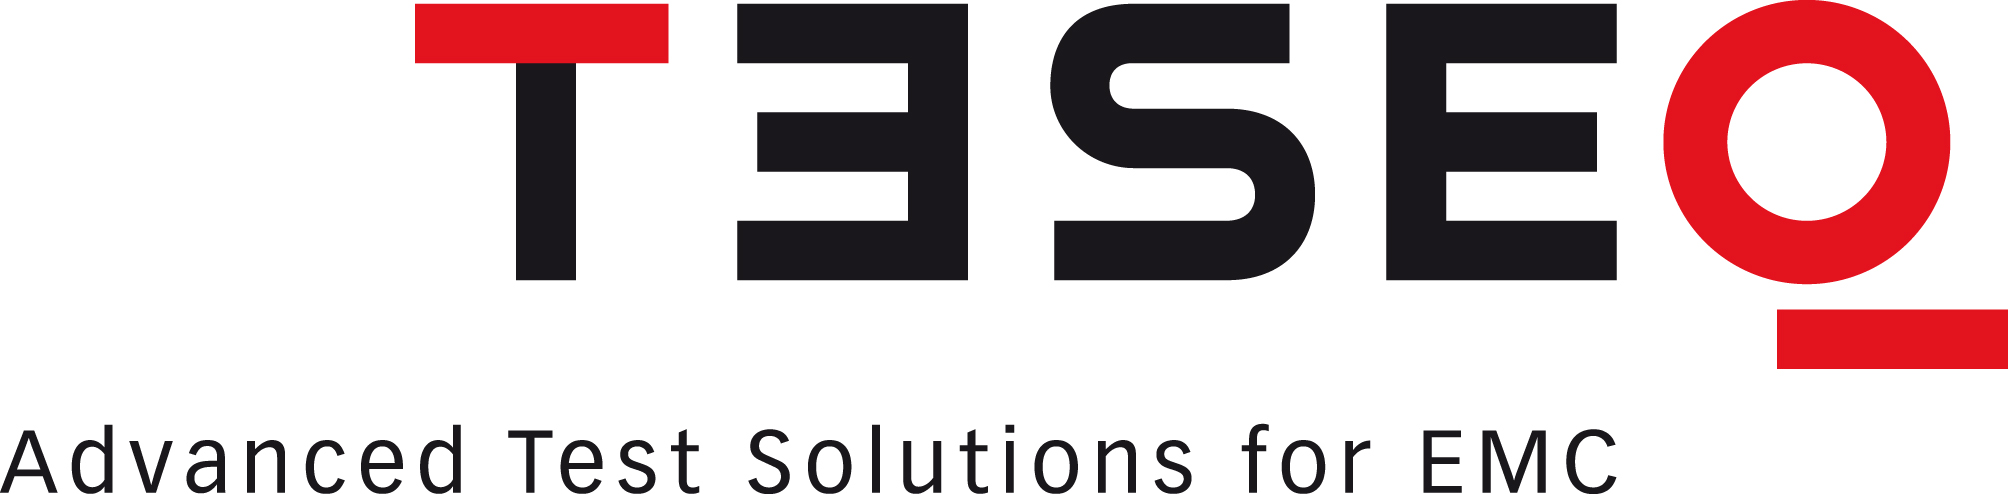 Teseq Automotive EMC